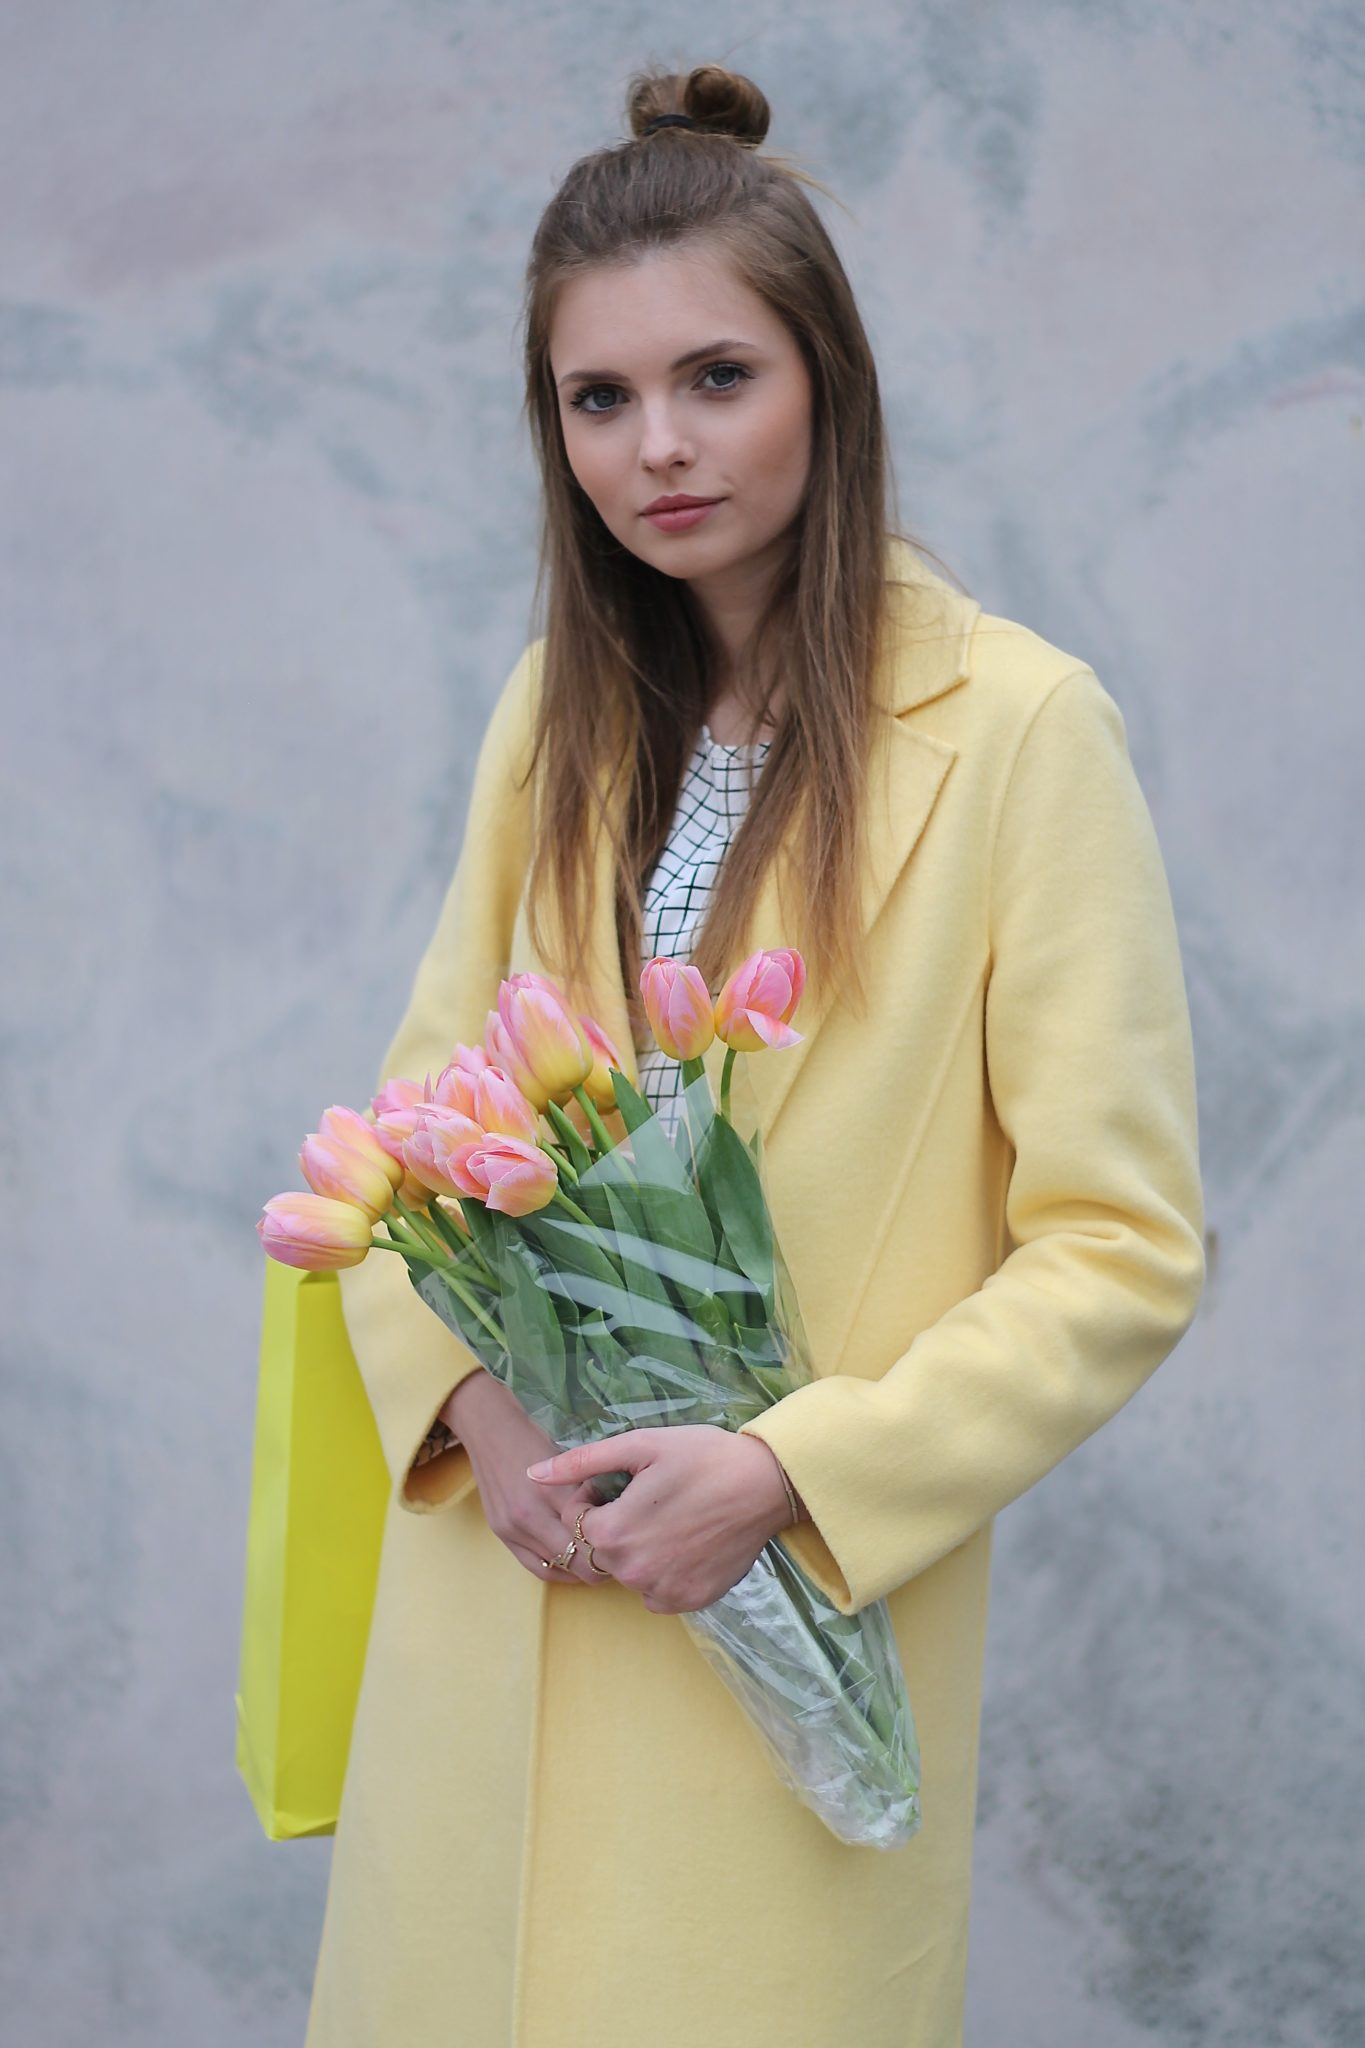 IMG 3022 - YELLOW COAT I SPRING